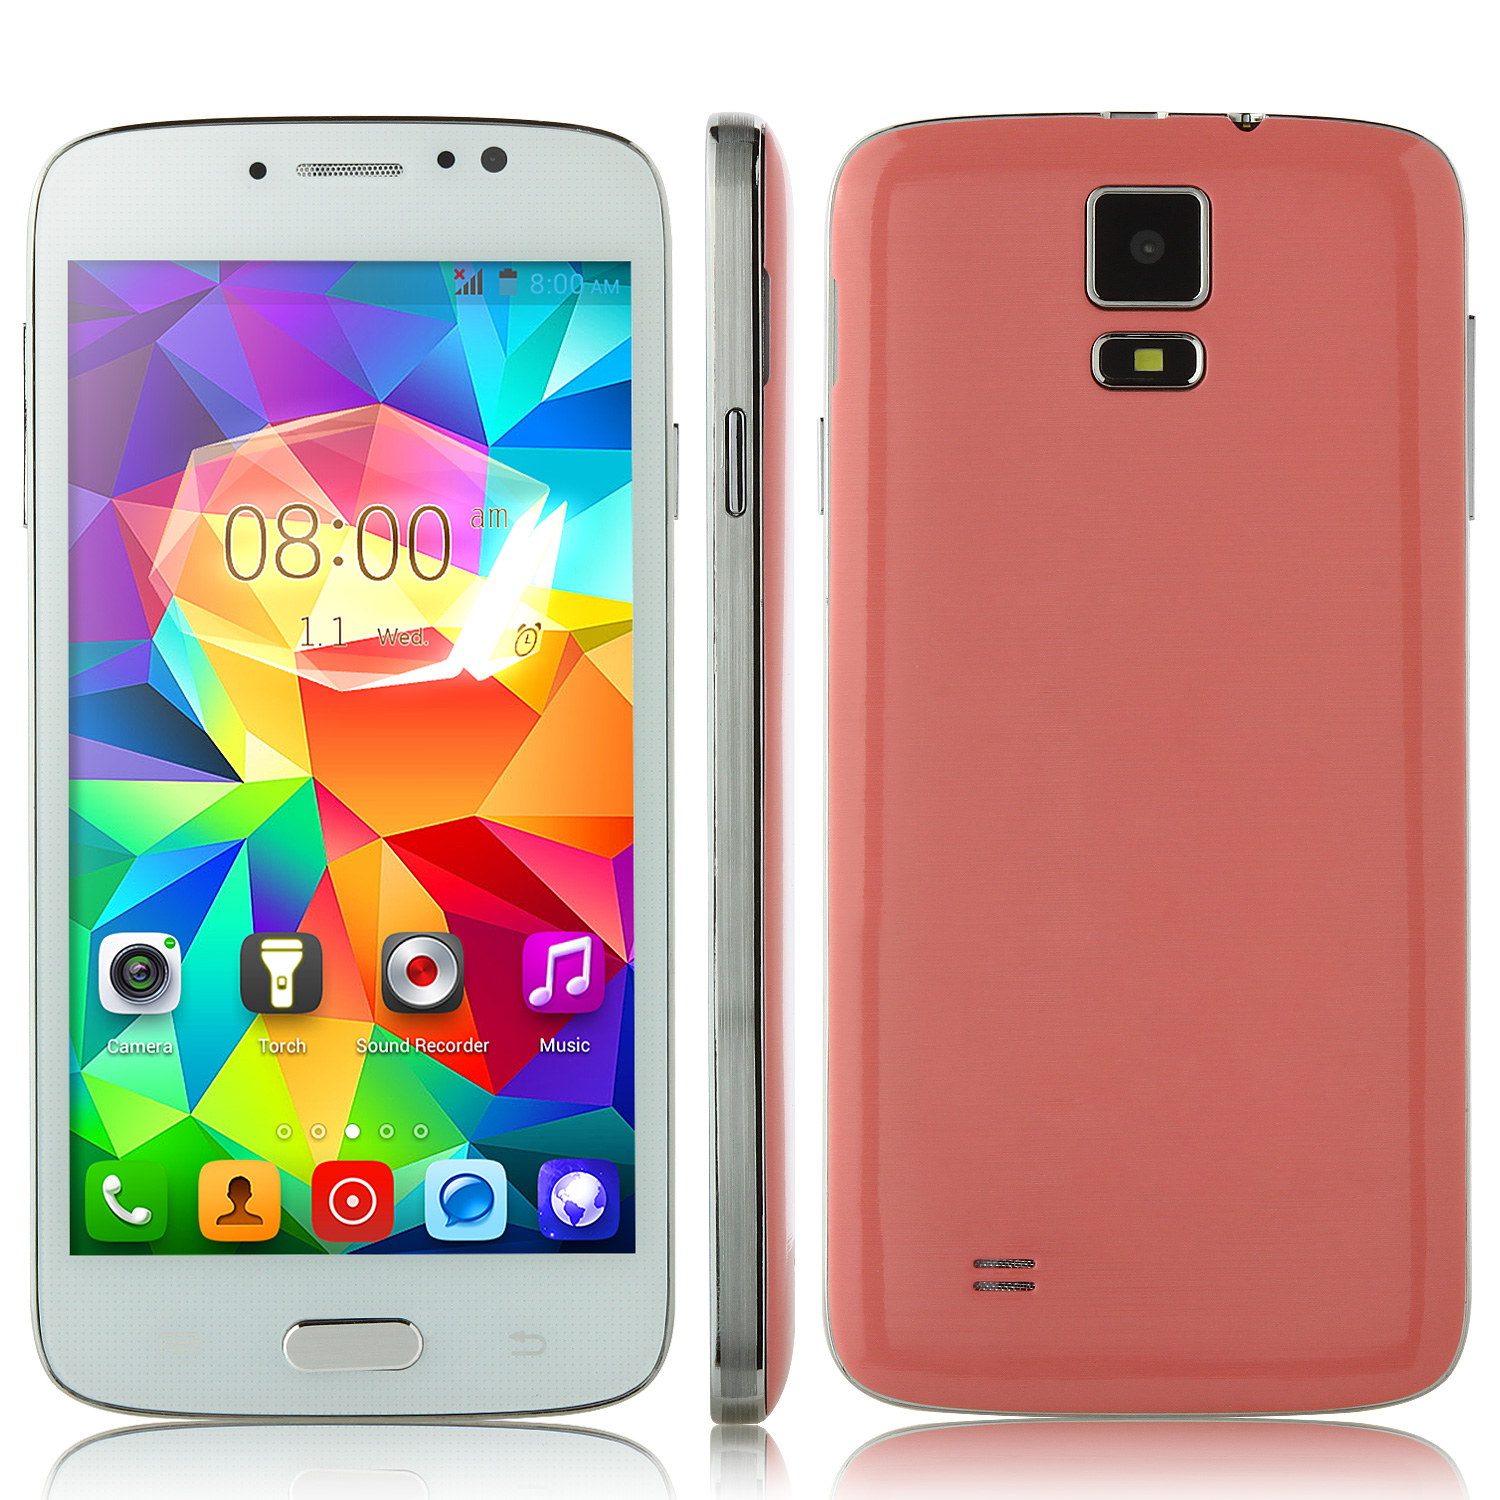 F-G906+ Smartphone Android 4.2 MTK6572W 5.0 Inch 3G GPS Pink